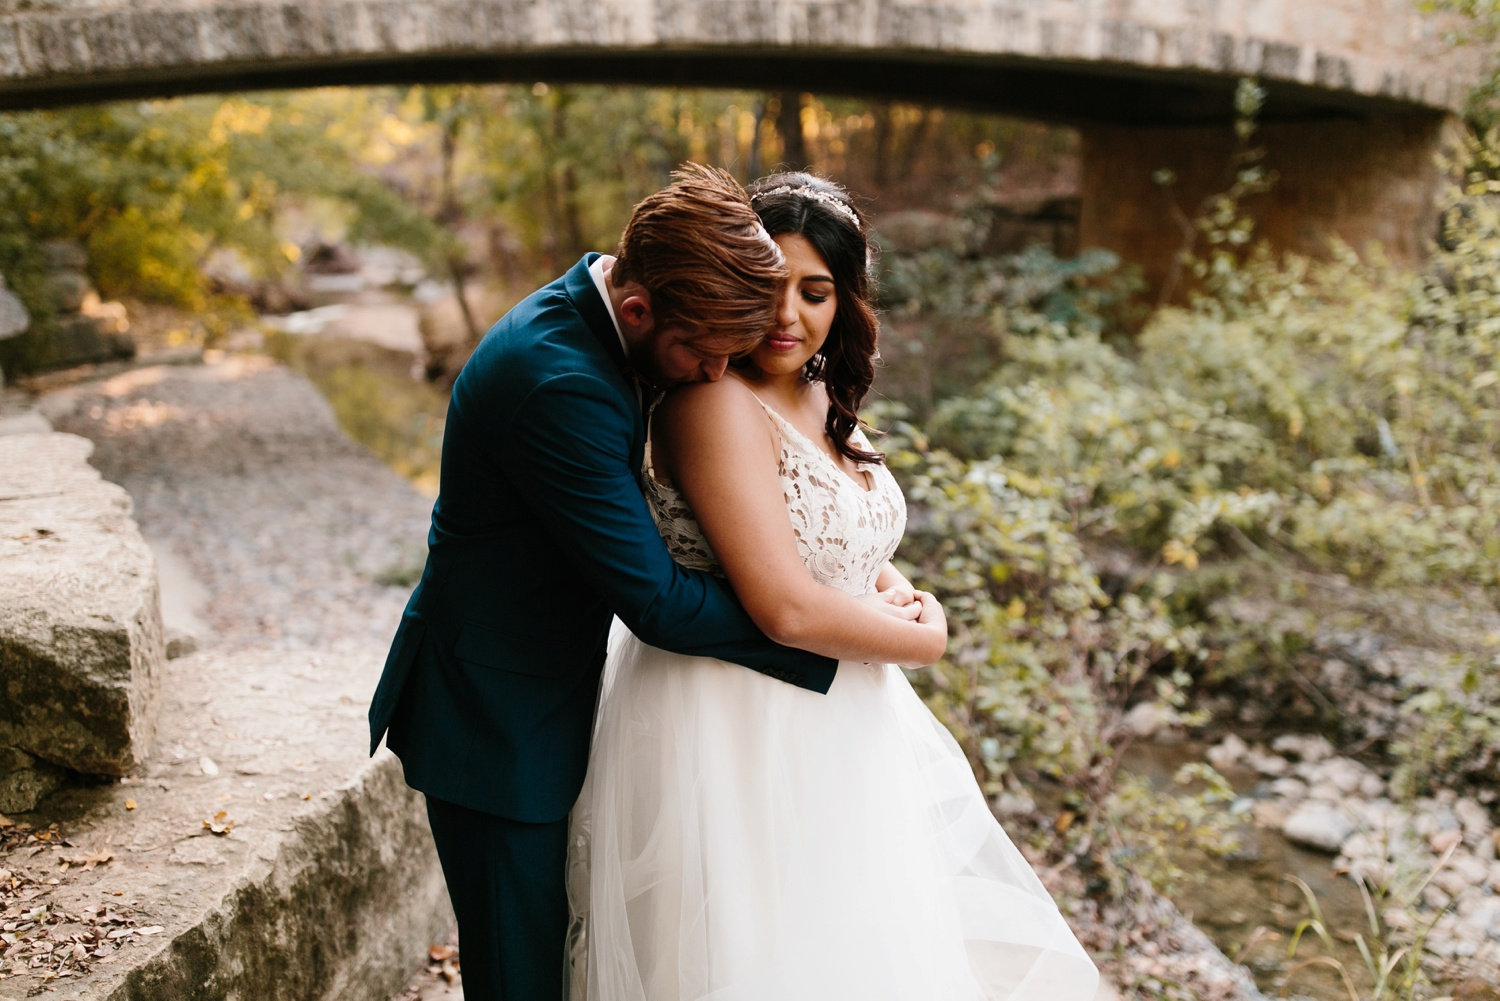 Grant + Lysette | a vibrant, deep burgundy and navy, and mixed metals wedding at Hidden Pines Chapel by North Texas Wedding Photographer Rachel Meagan Photography 213